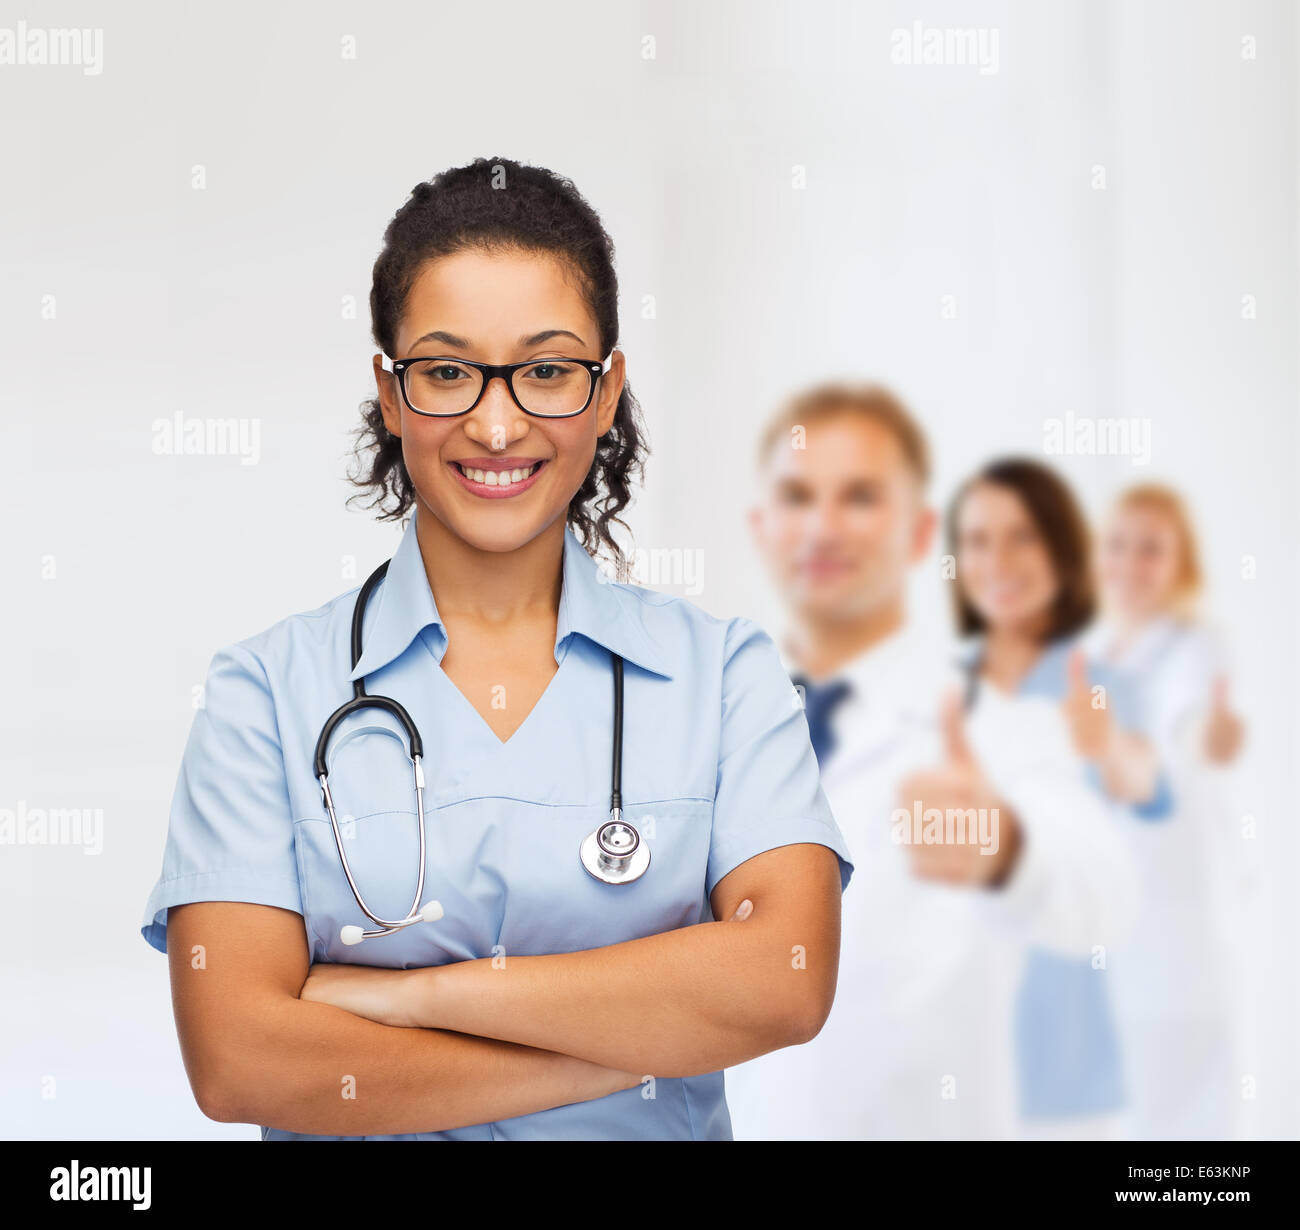 smiling female african american doctor or nurse - Stock Image